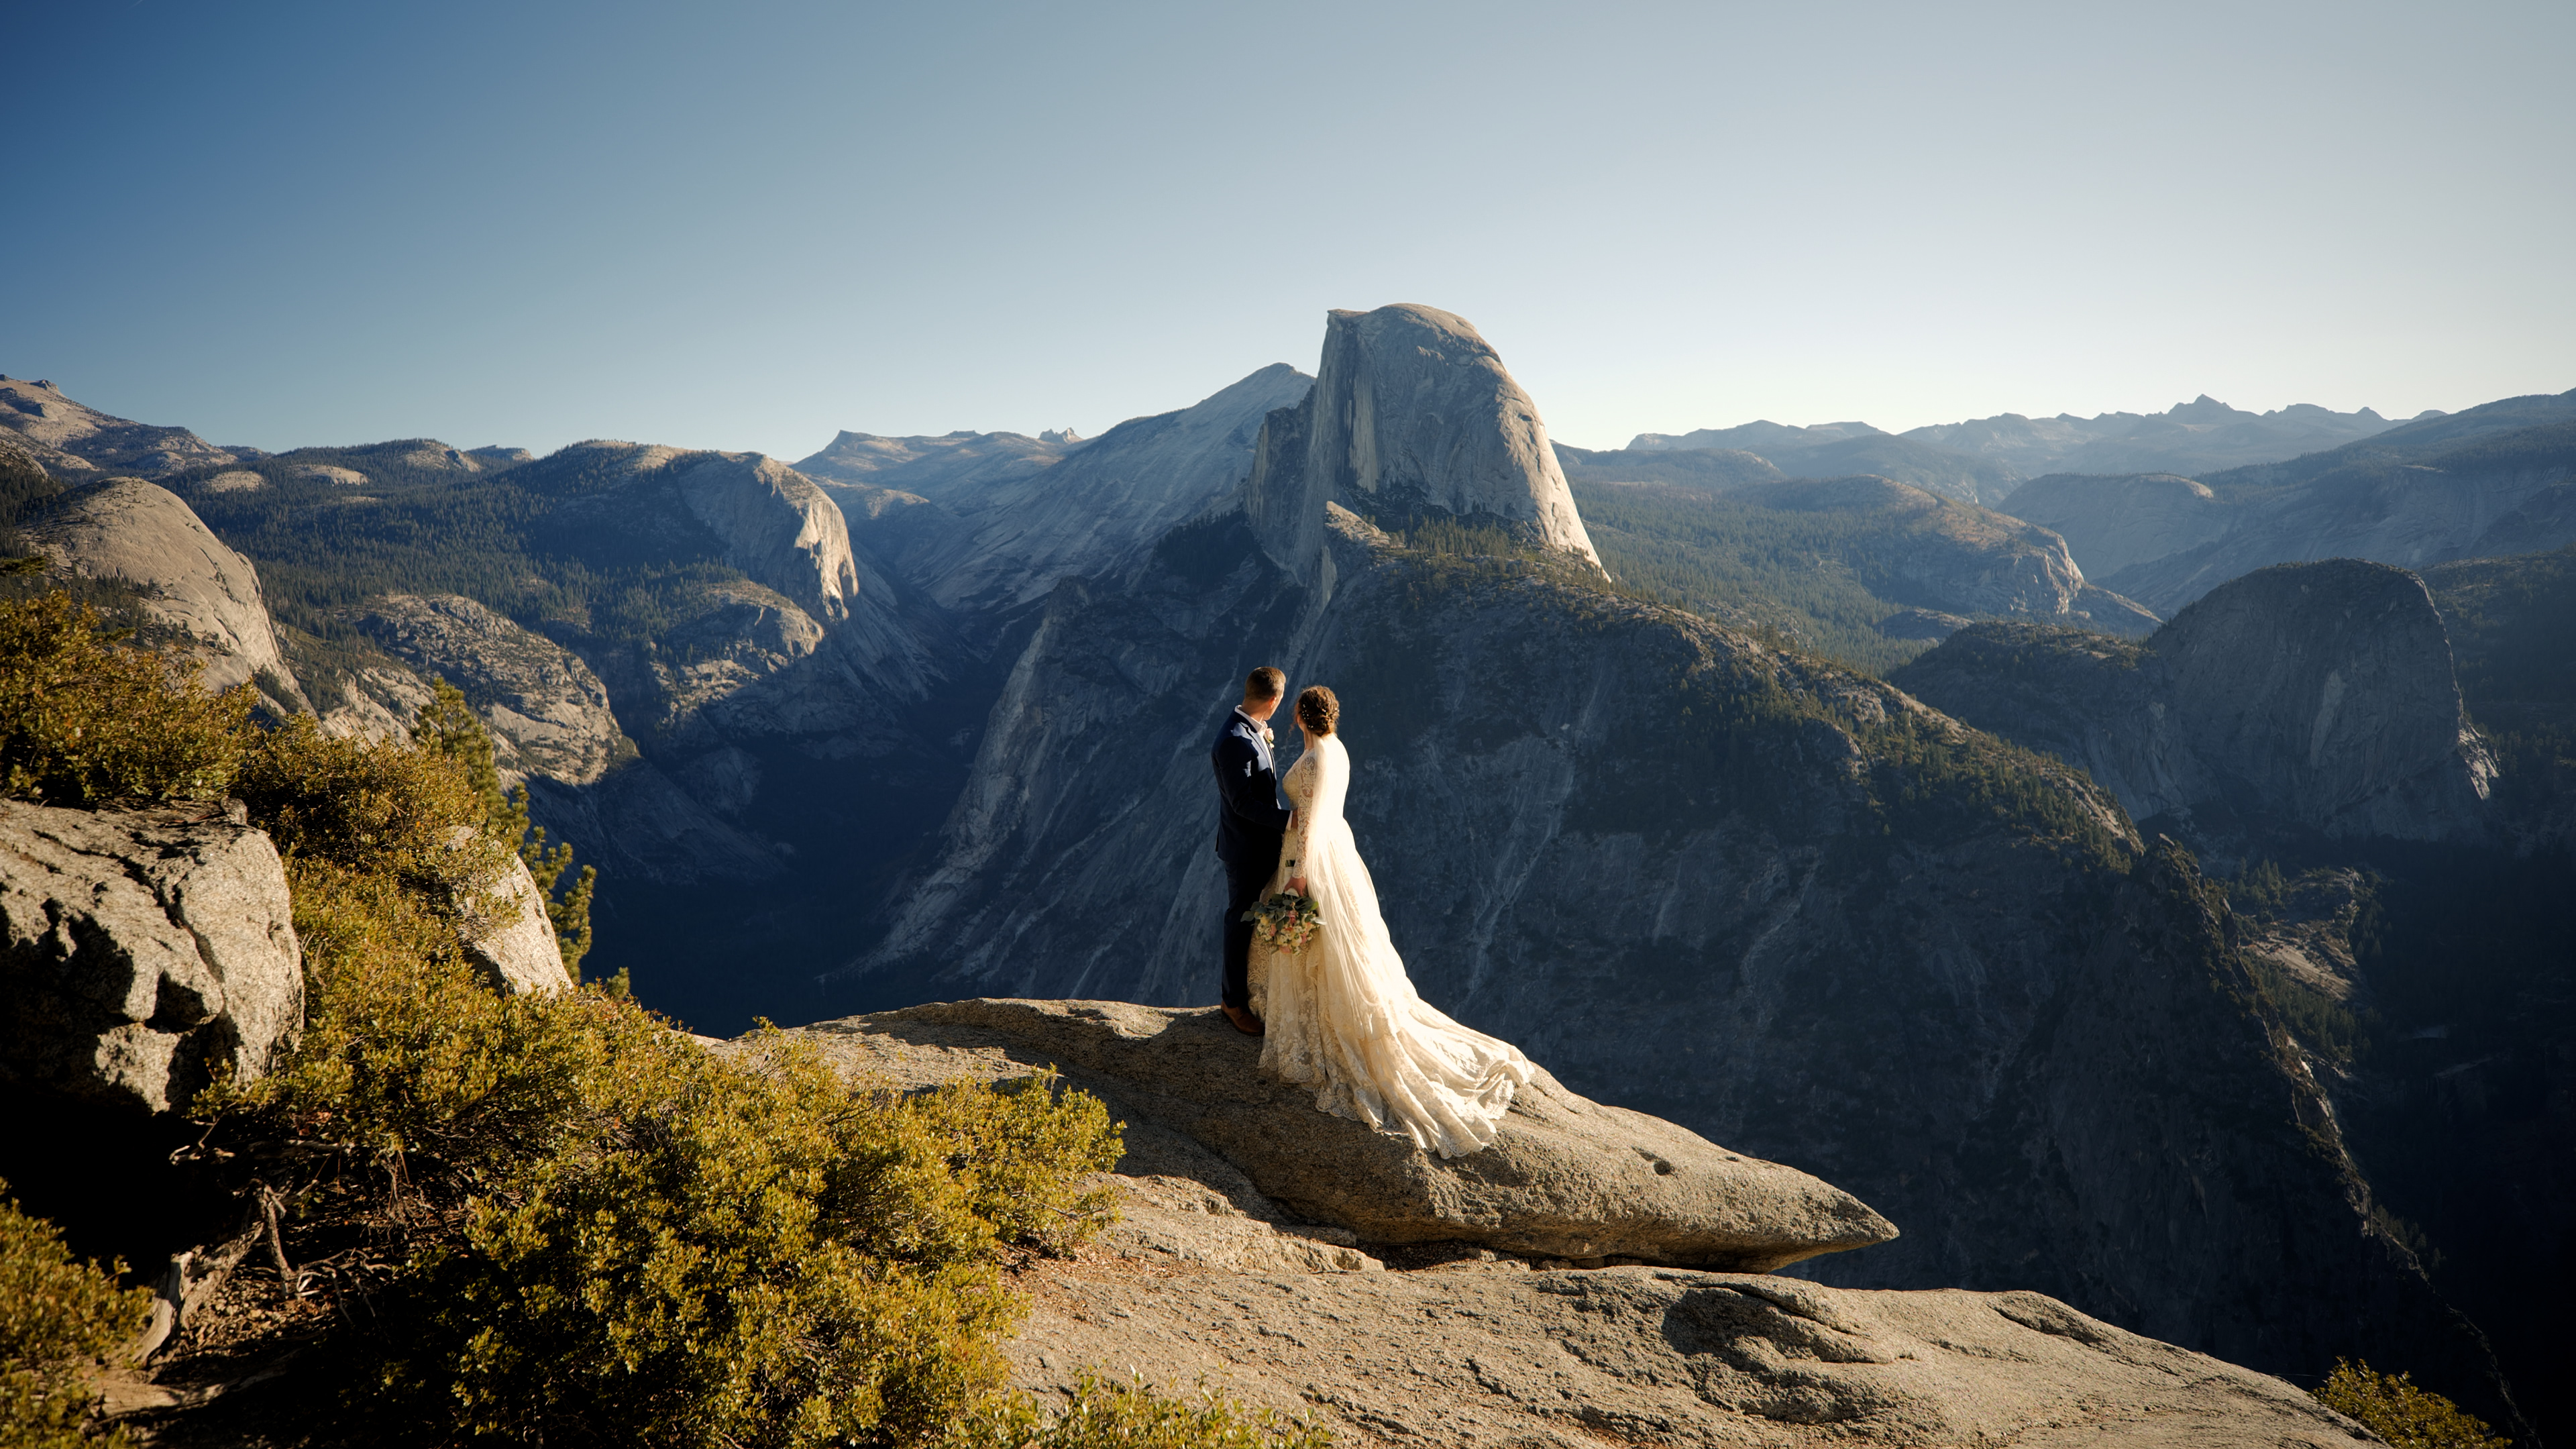 Sarah + Adam | Yosemite Valley, California | Yosemite National Park